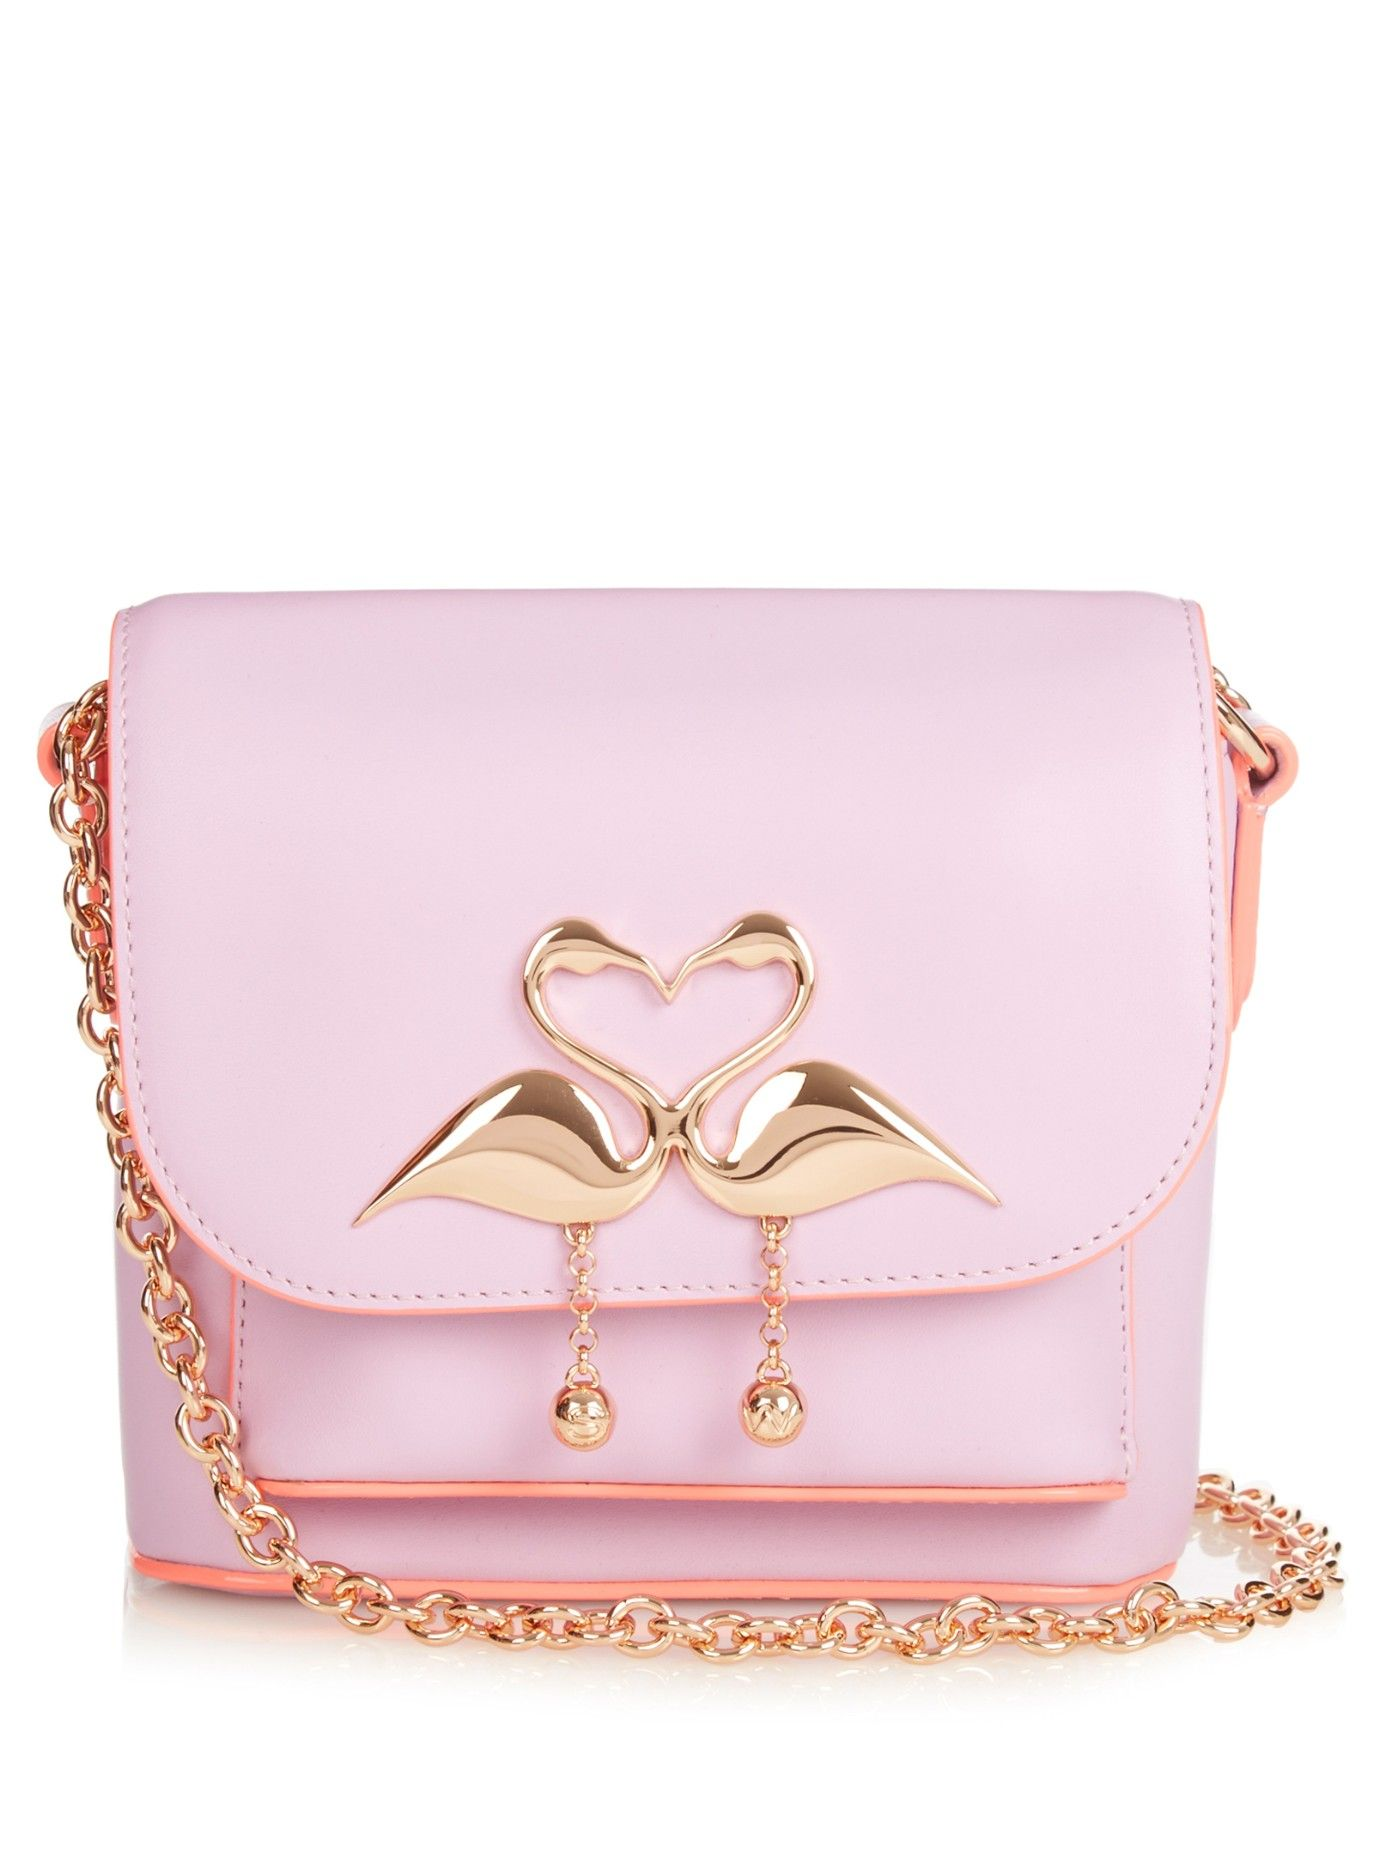 SOPHIA WEBSTER Mini Claudie leather cross-body bag